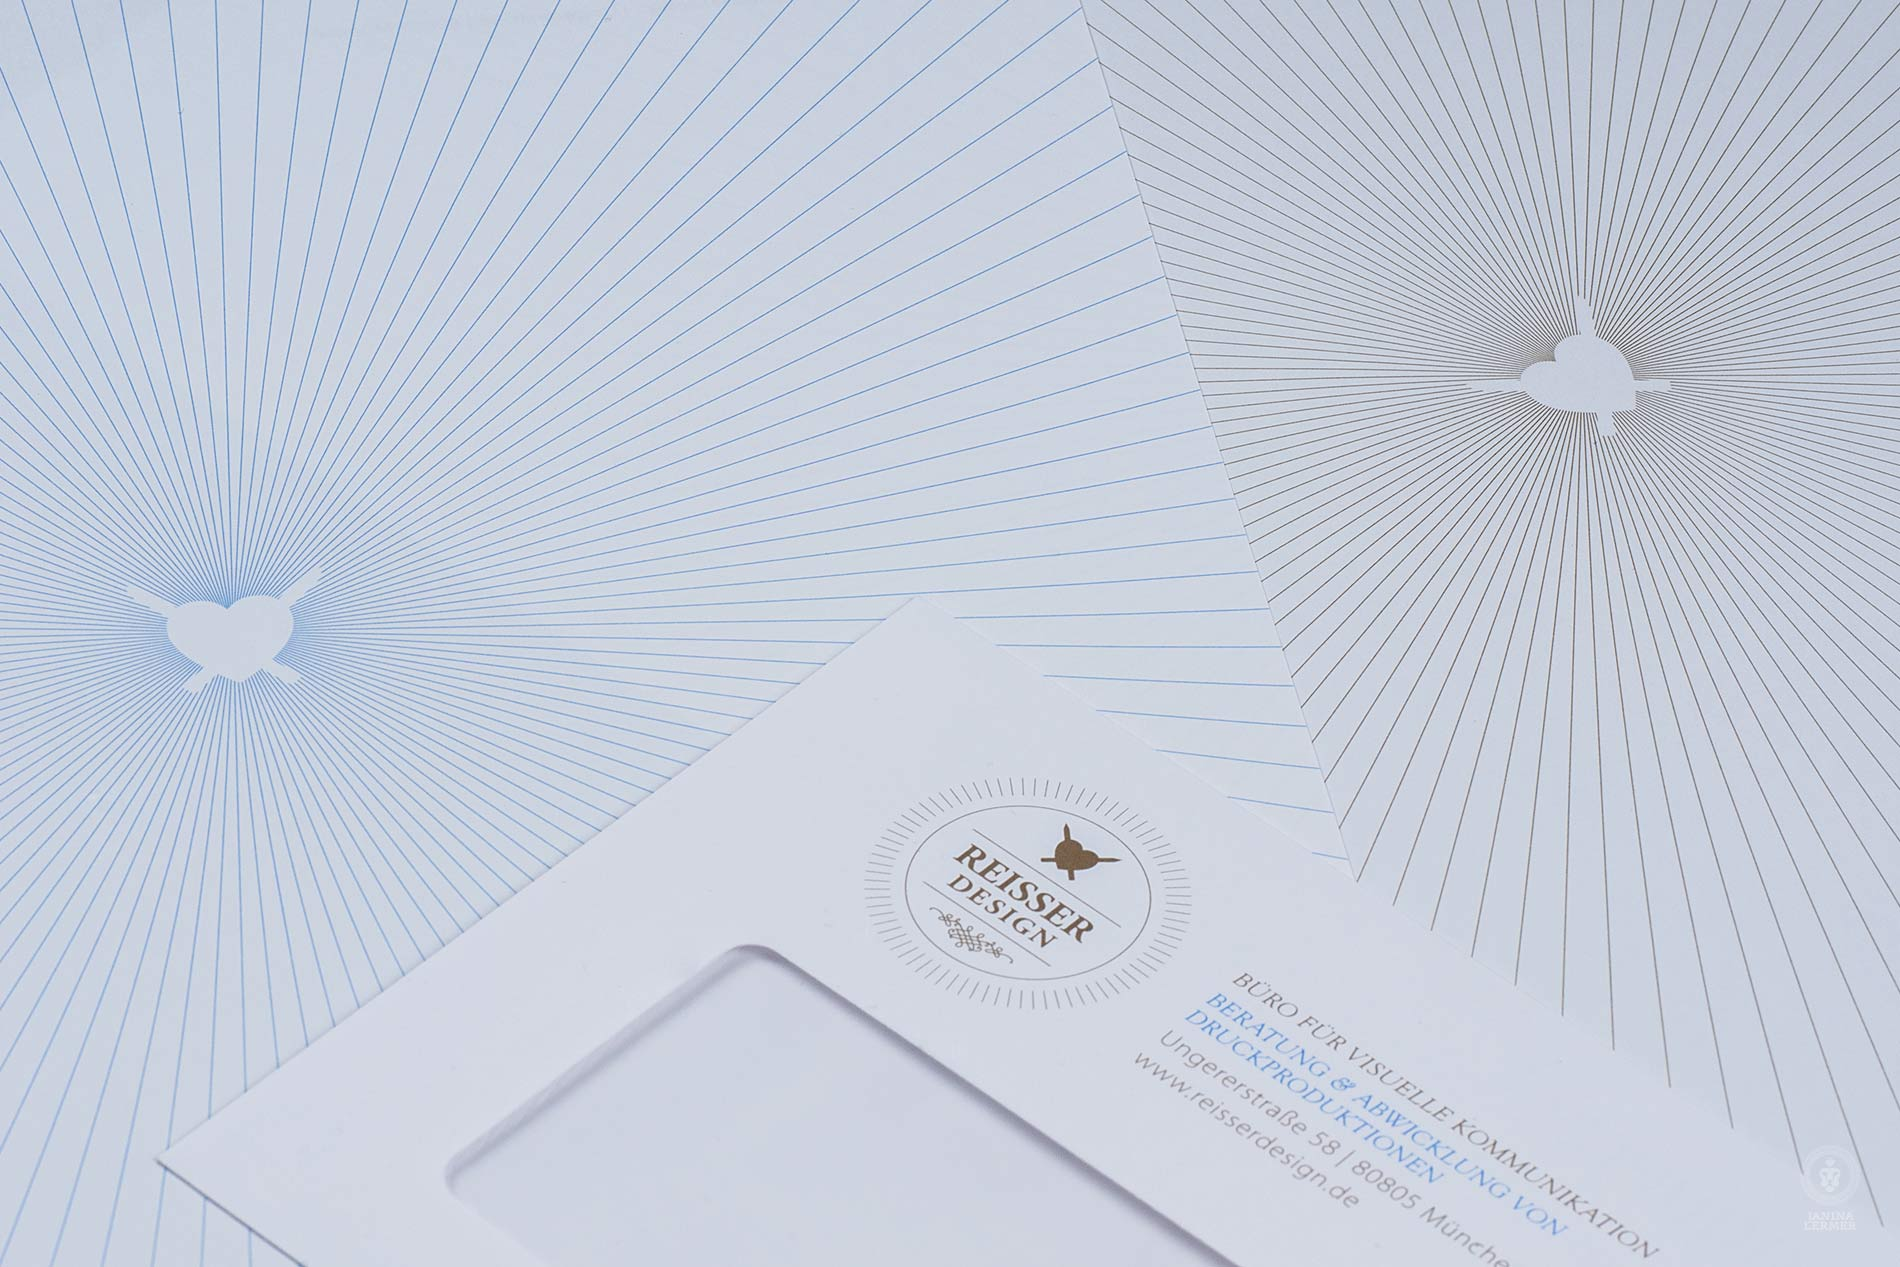 Janina-Lermer-Markengestaltung-Branddesign-Corporate-Design-Reisserdesign-Stationary-Briefpapier-Backside-Rueckseite-Briefkuvert-evnevlope